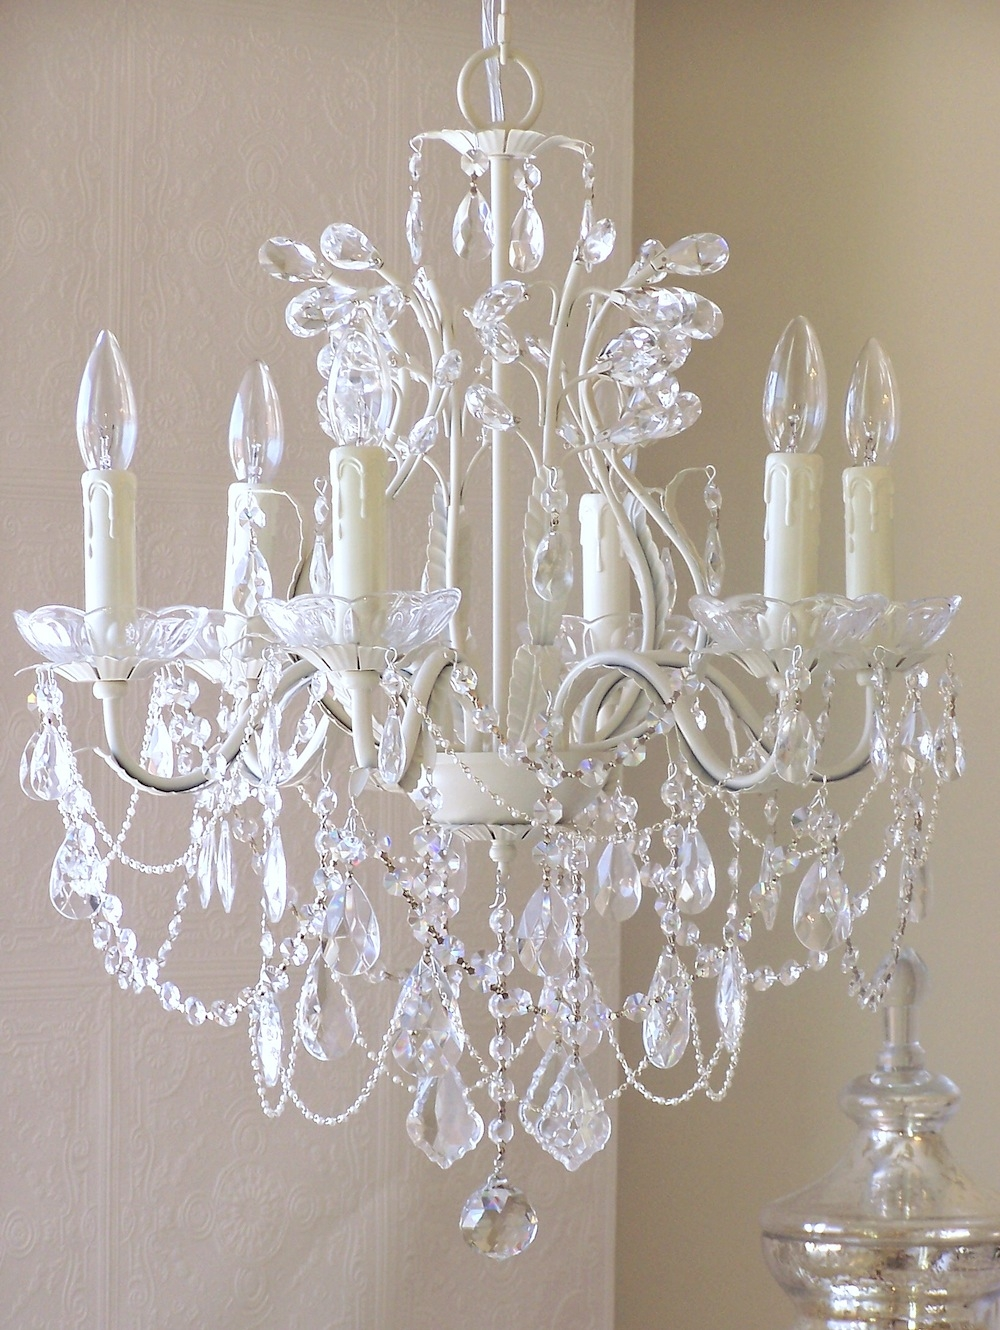 Chandeliers For Ba Nursery Thenurseries Pertaining To Crystal Chandeliers For Baby Girl Room (Image 16 of 25)